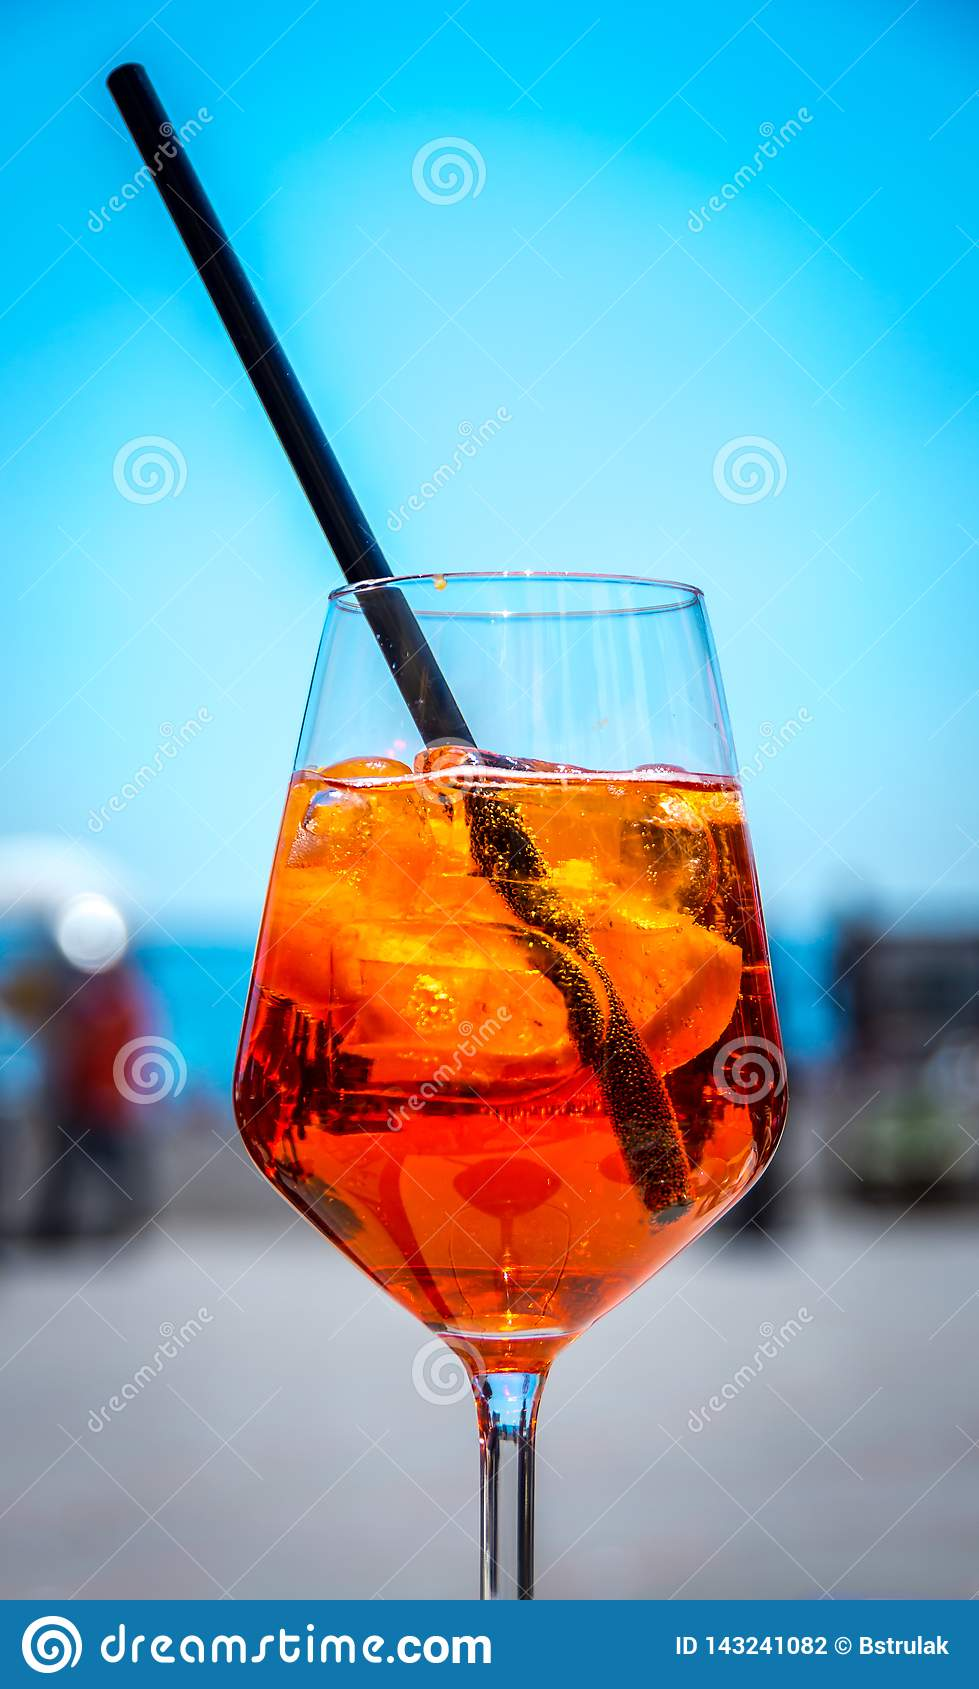 Famous Italian Aperol spritz during the hot summer